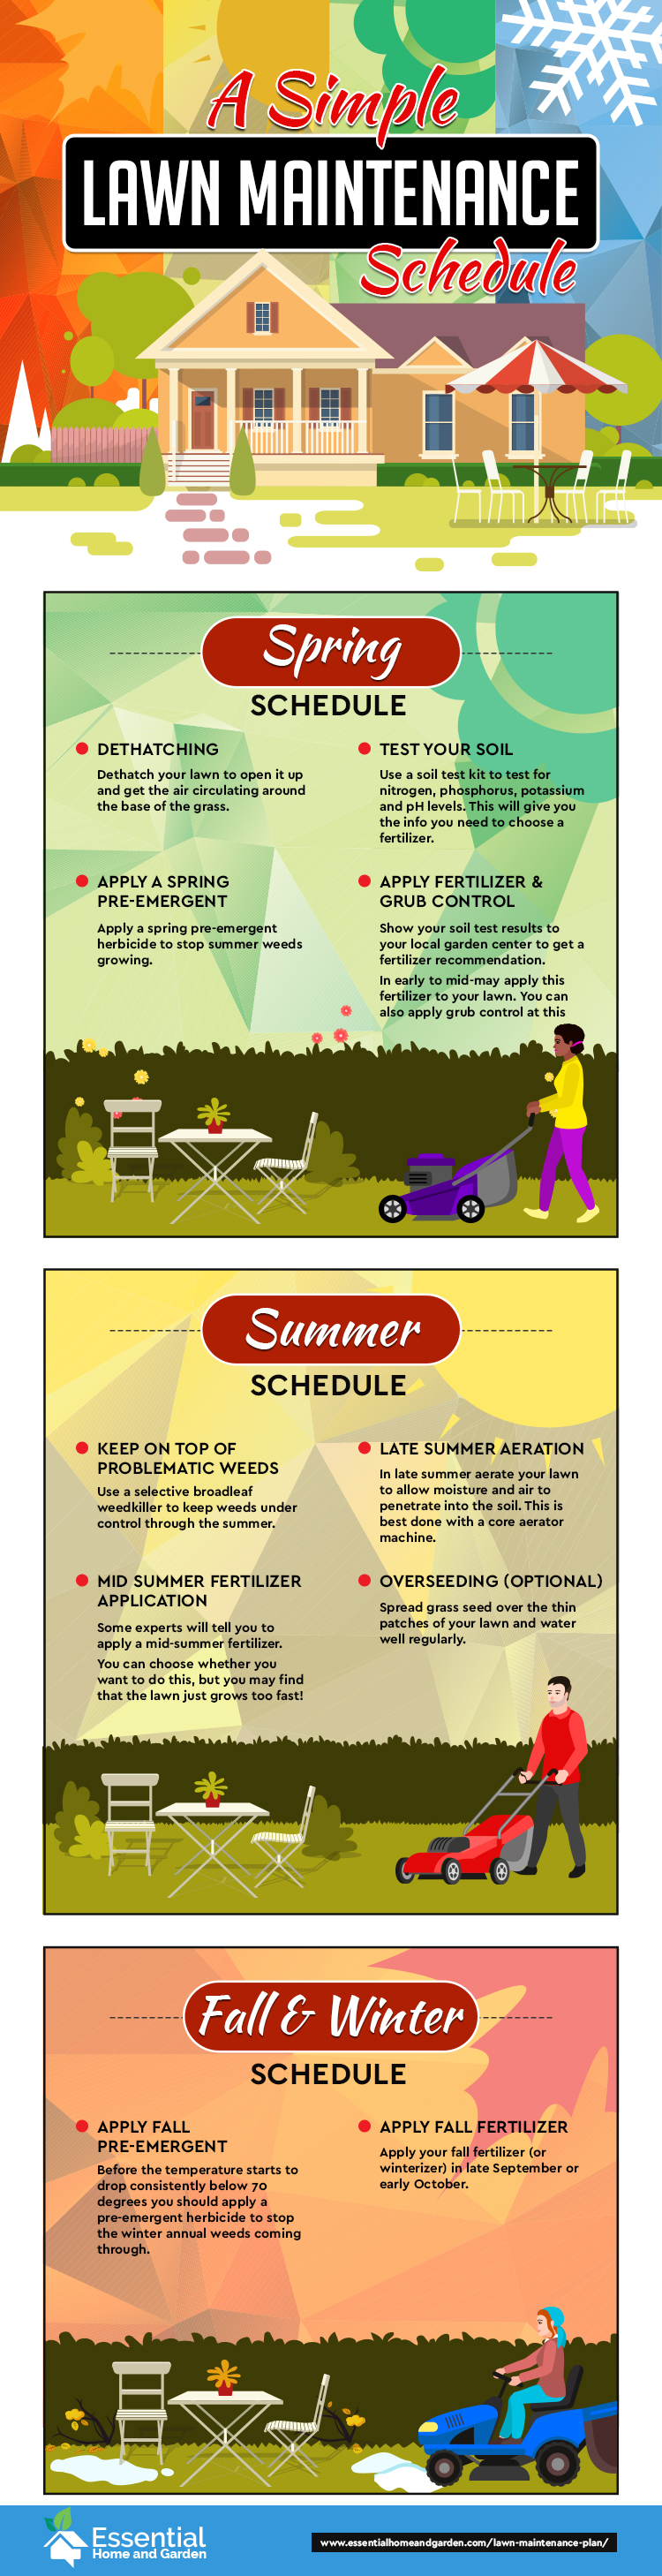 a simple lawn maintenance schedule infographic